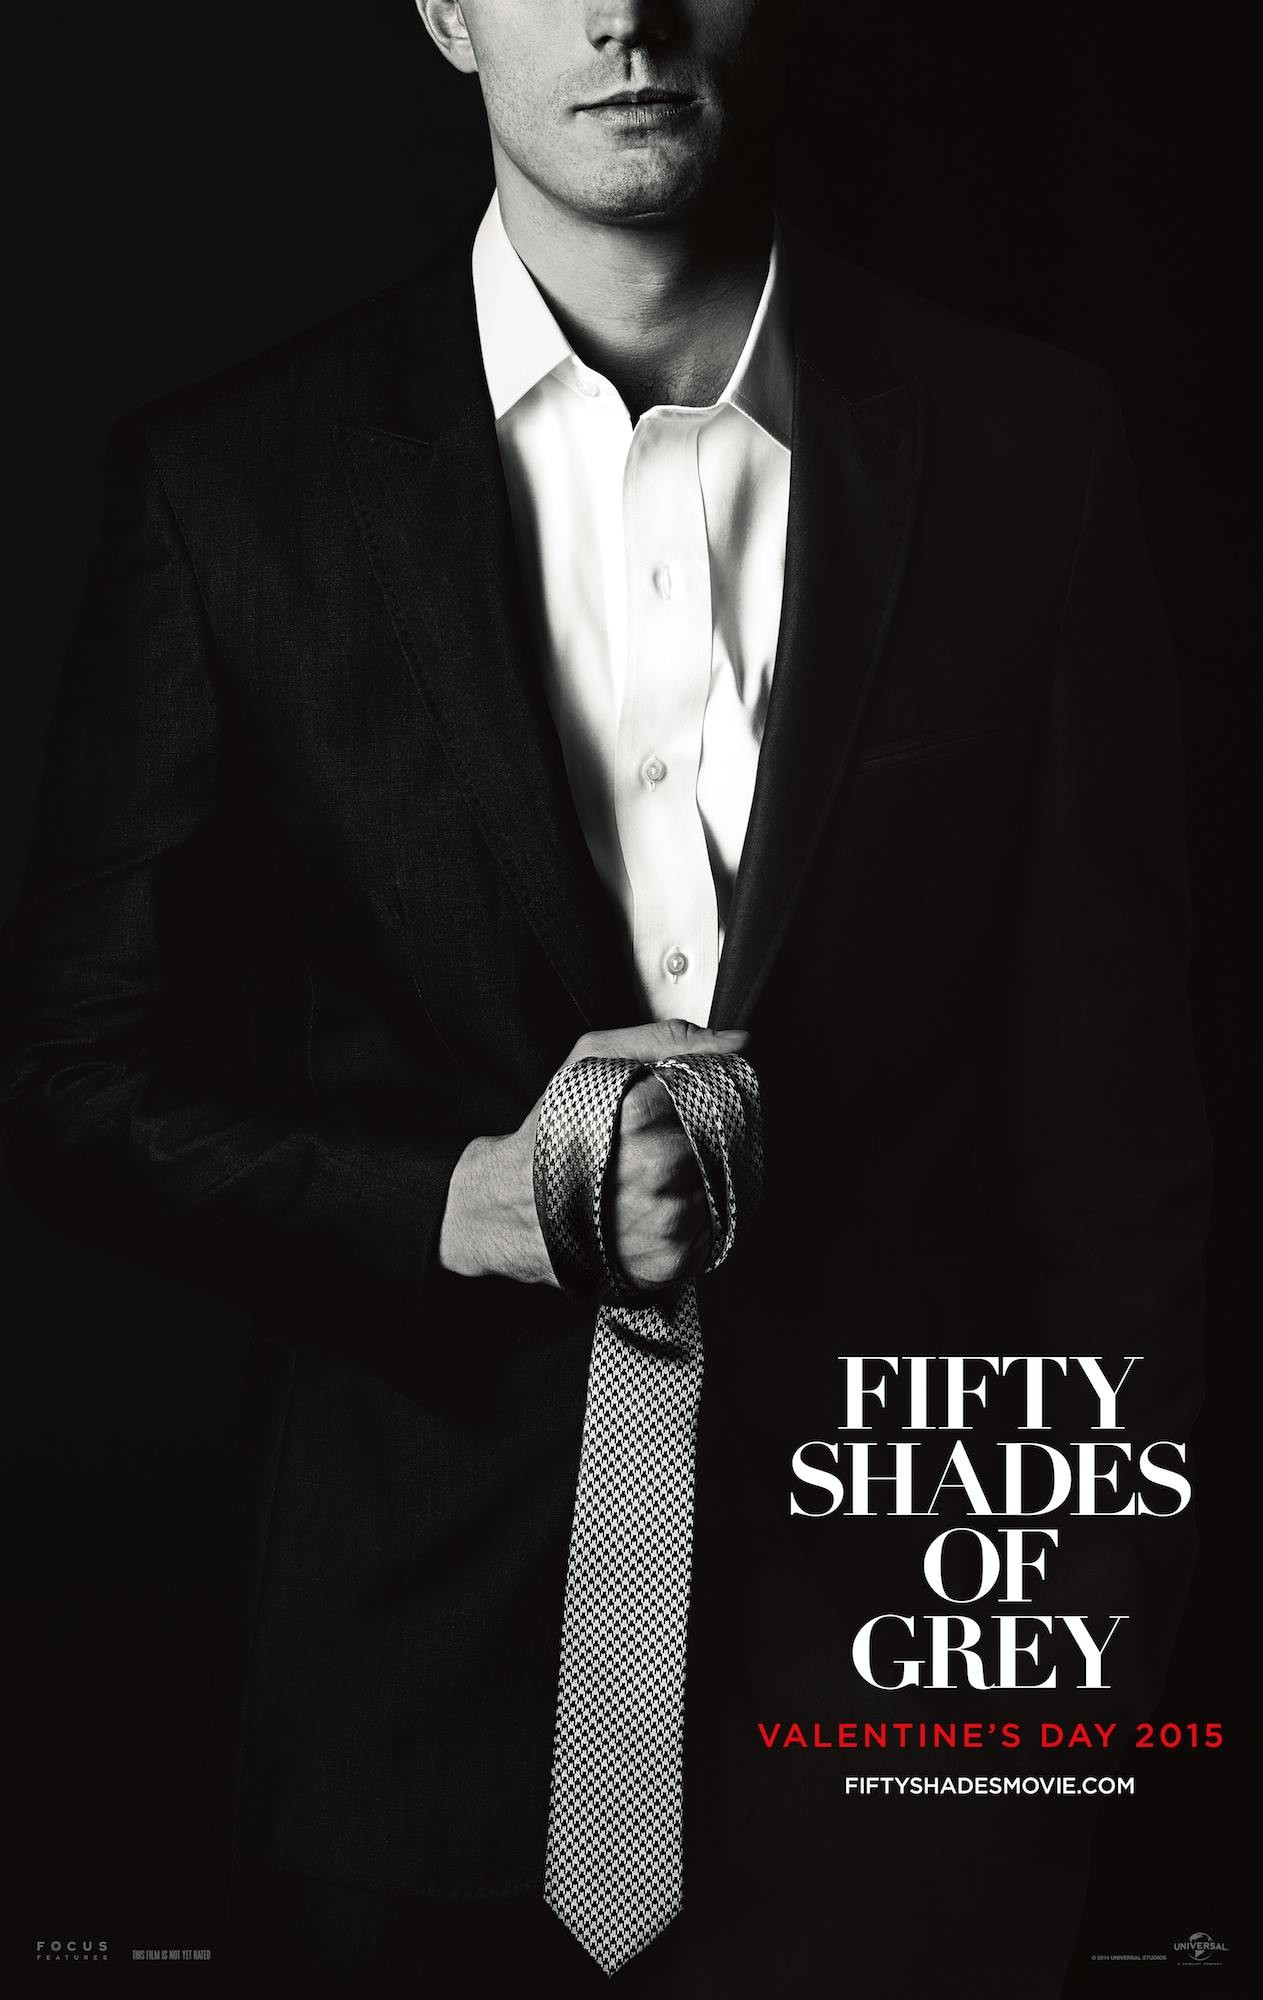 Fifty Shades of Grey Poster 3 - blackfilm.com/read